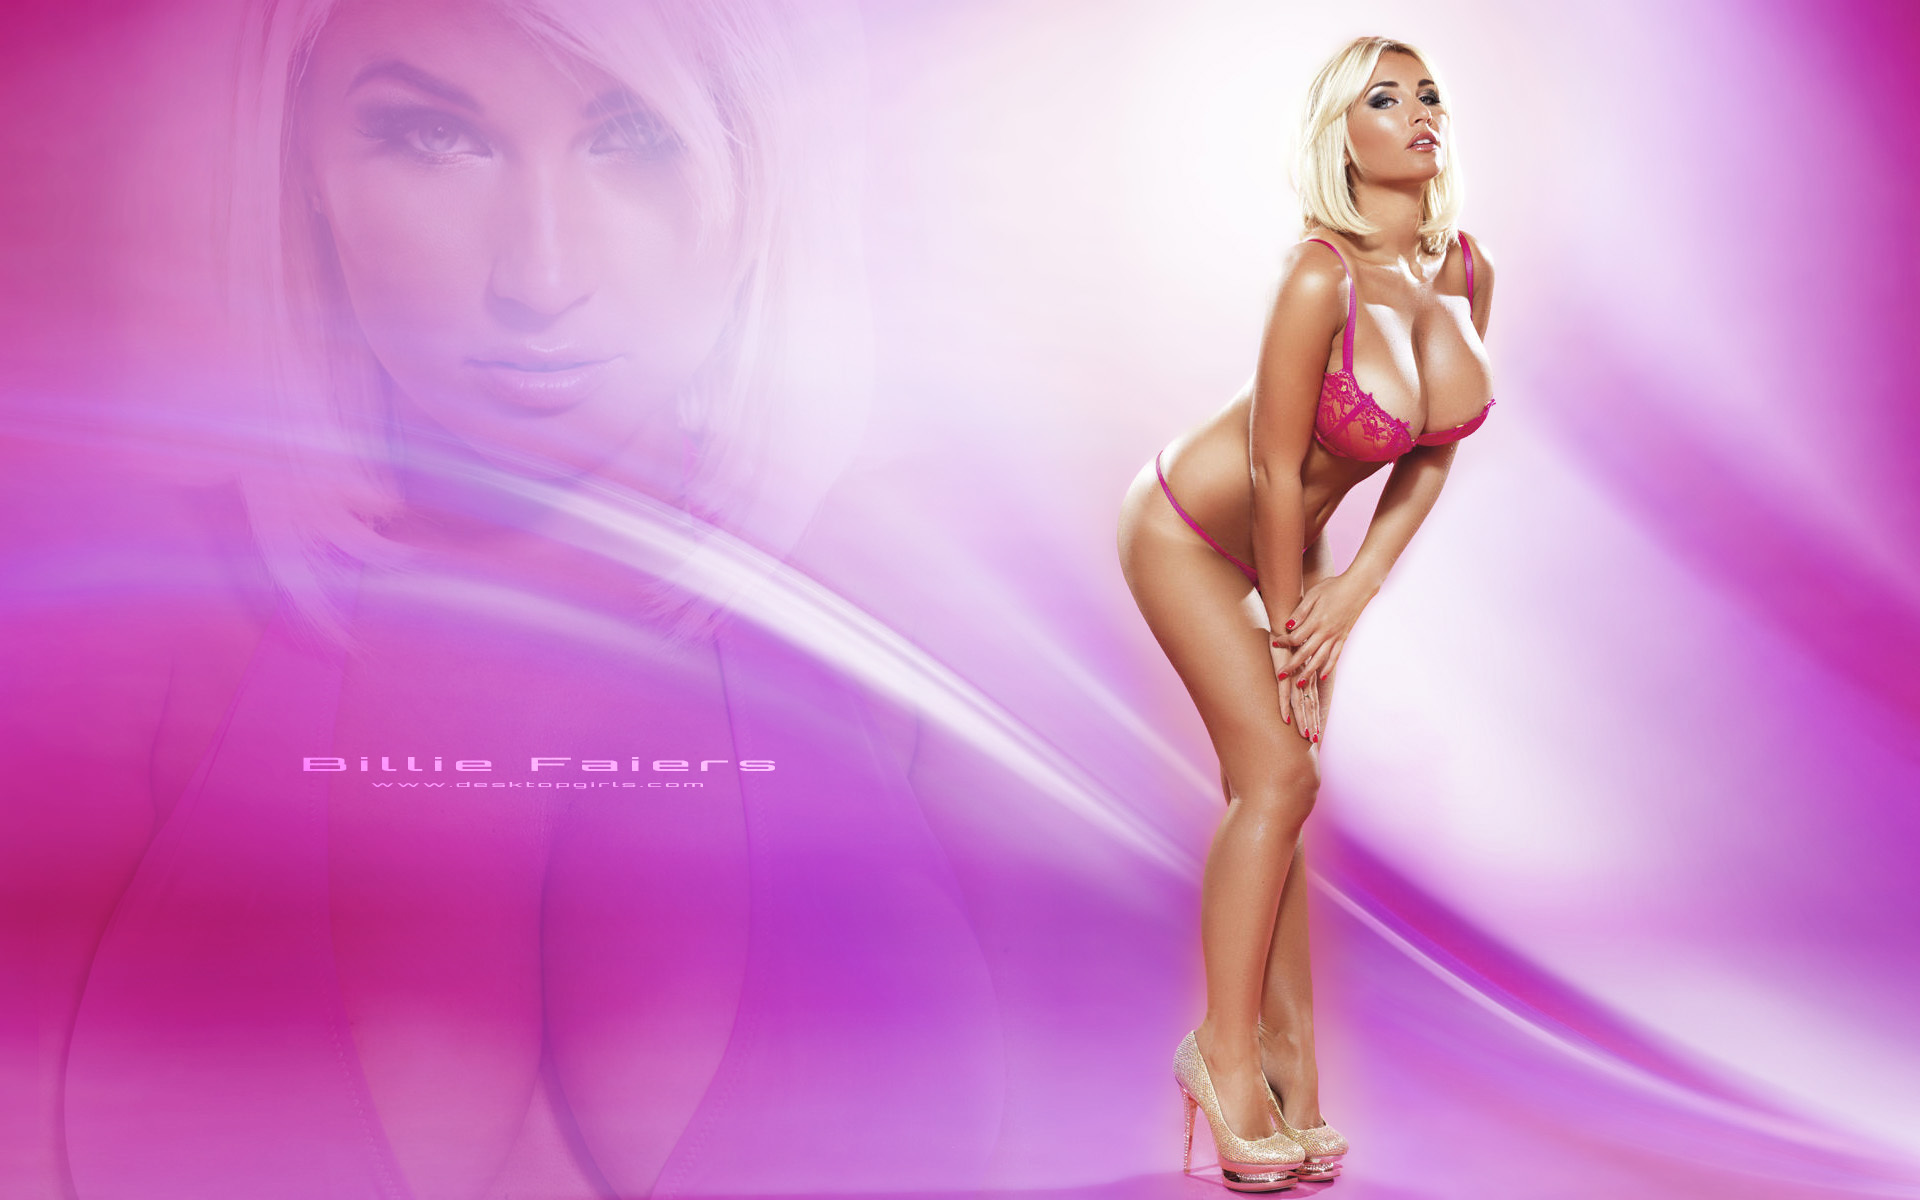 Billie Faiers Widescreen